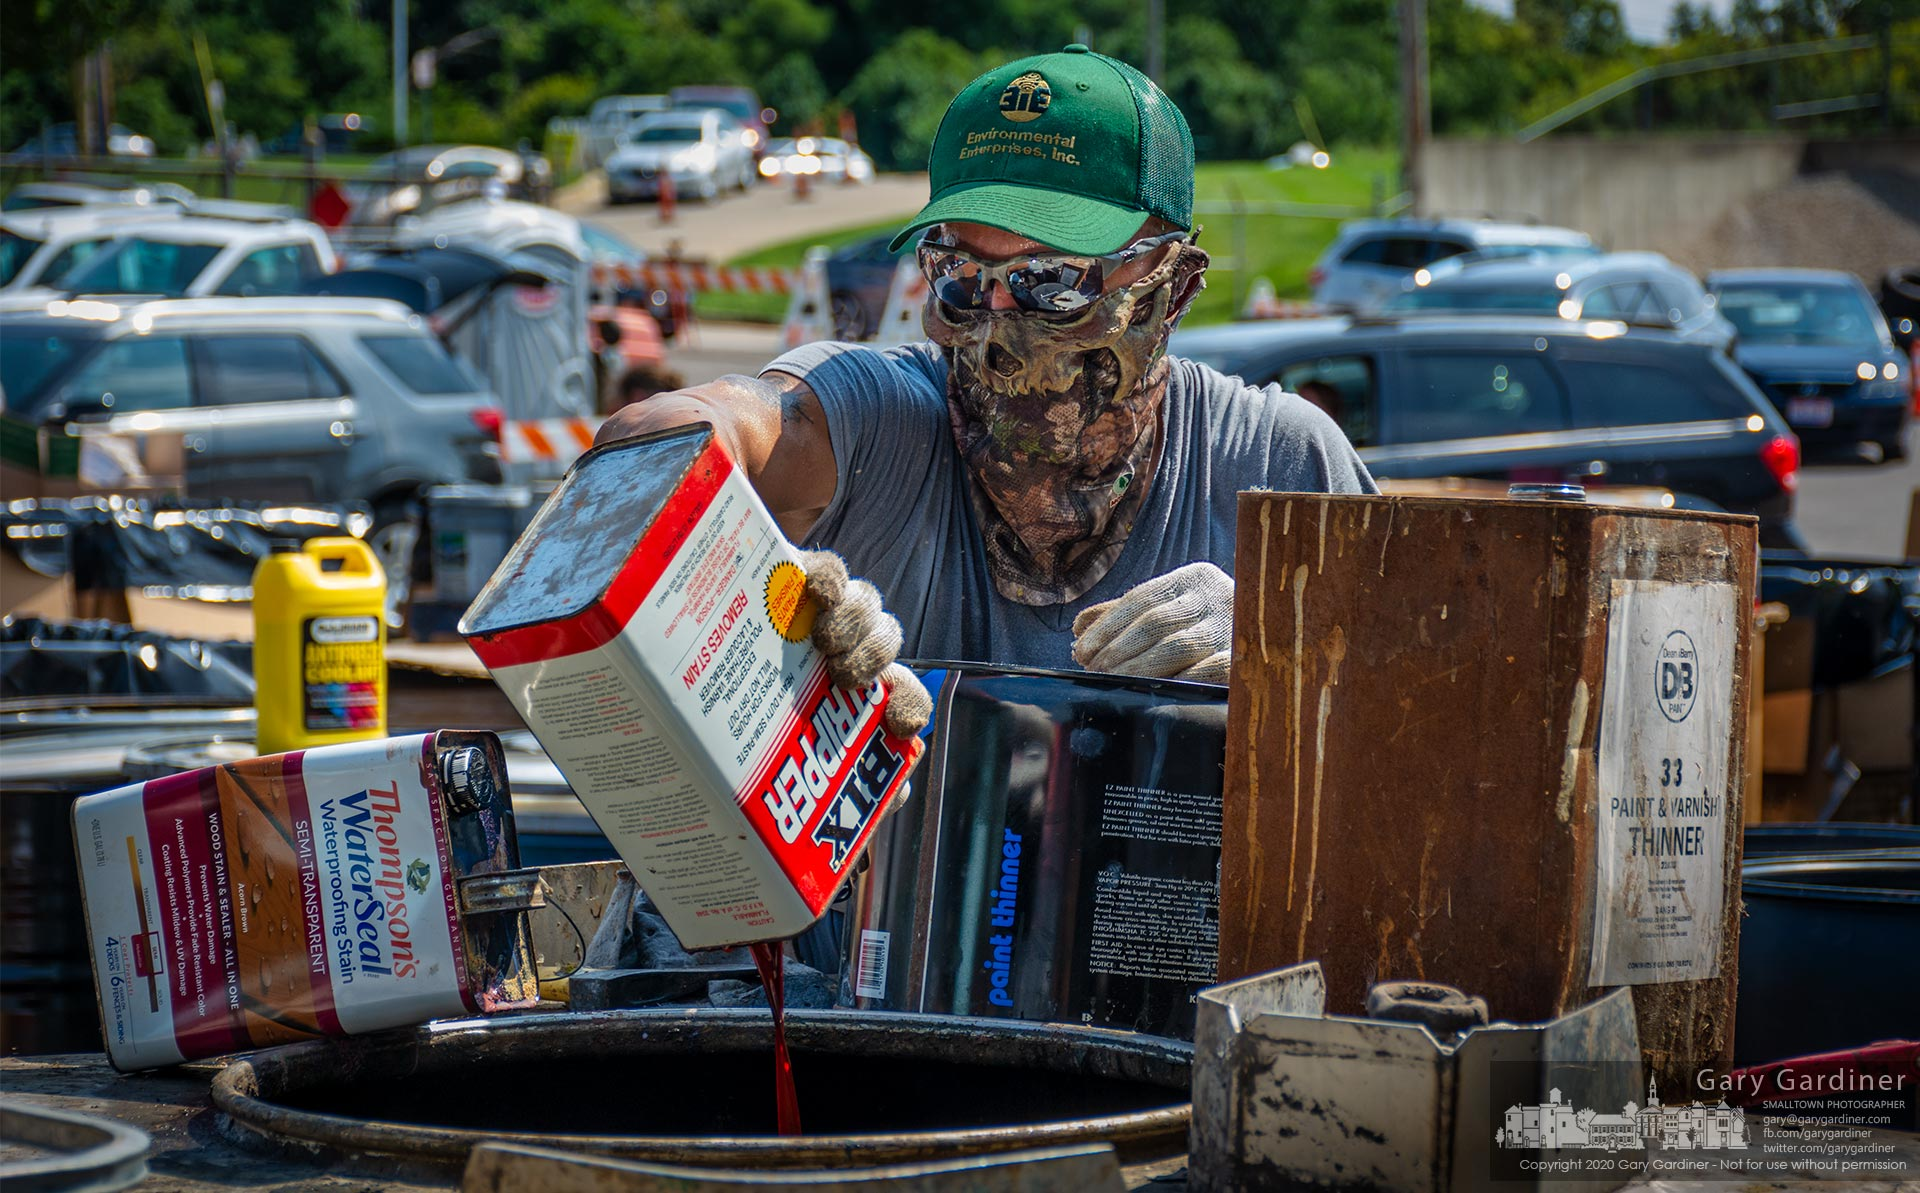 A worker empties discarded petroleum products into a container during a hazardous waste disposal event where everything from tires to electronics and batters to paints and old gasoline was collected for proper disposal. My Final Photo for Sept. 12, 2020.